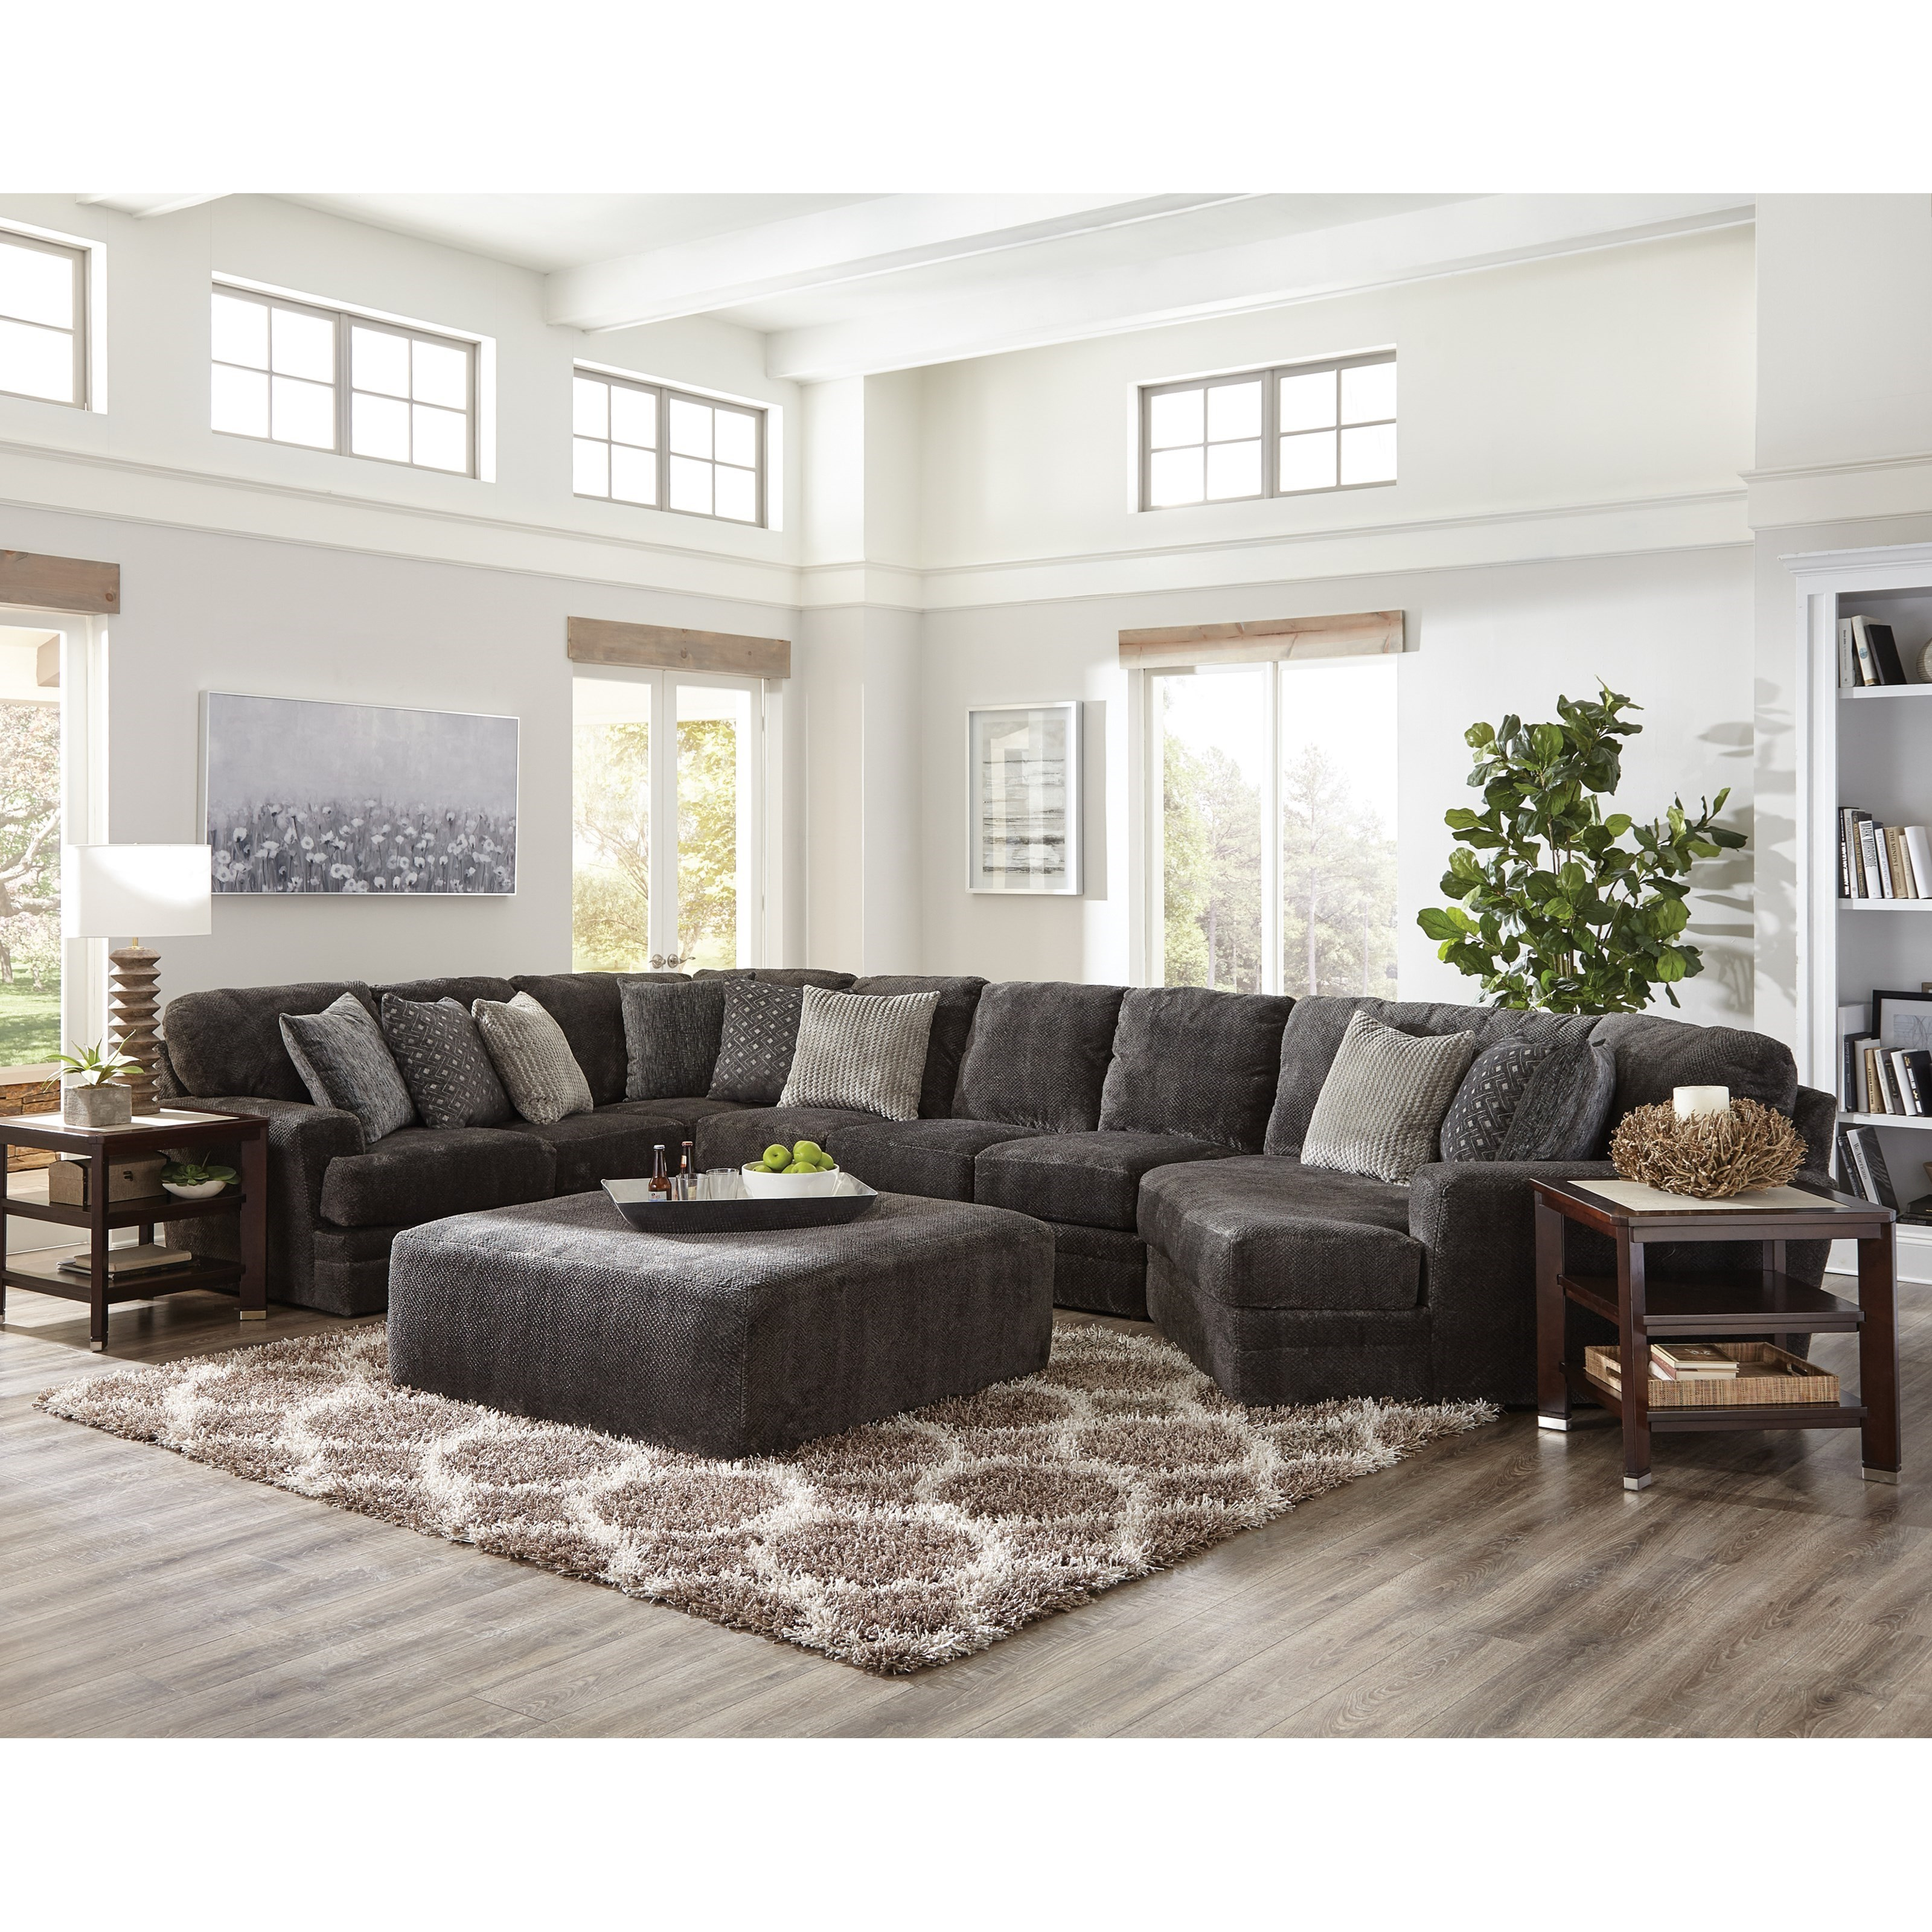 Mammoth 4 Piece Sectional by Jackson Furniture at Northeast Factory Direct